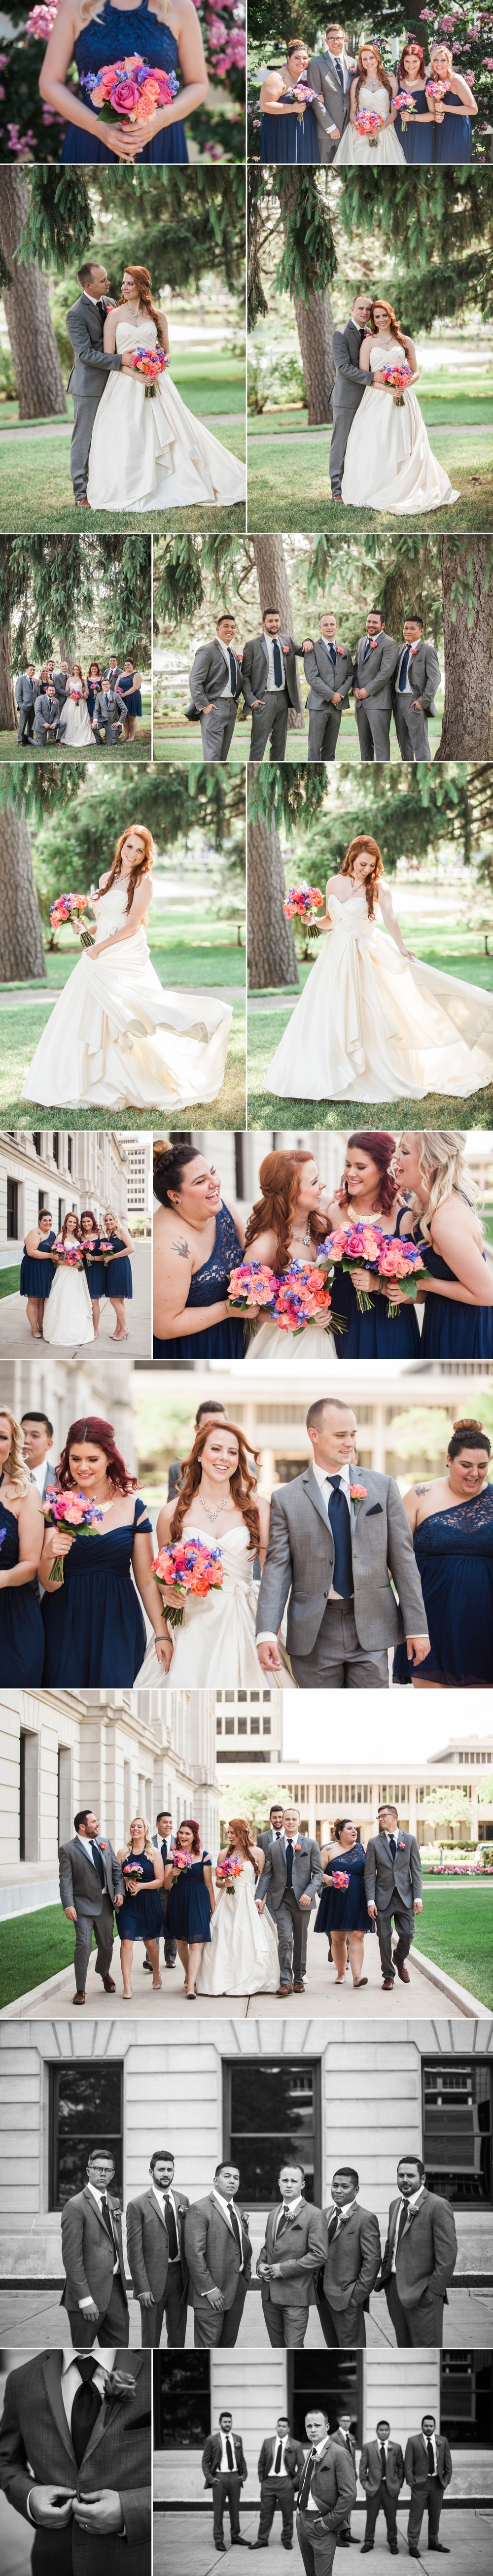 wedding-bride-groom-bouquet-portraits-park-roses-wedding party-3